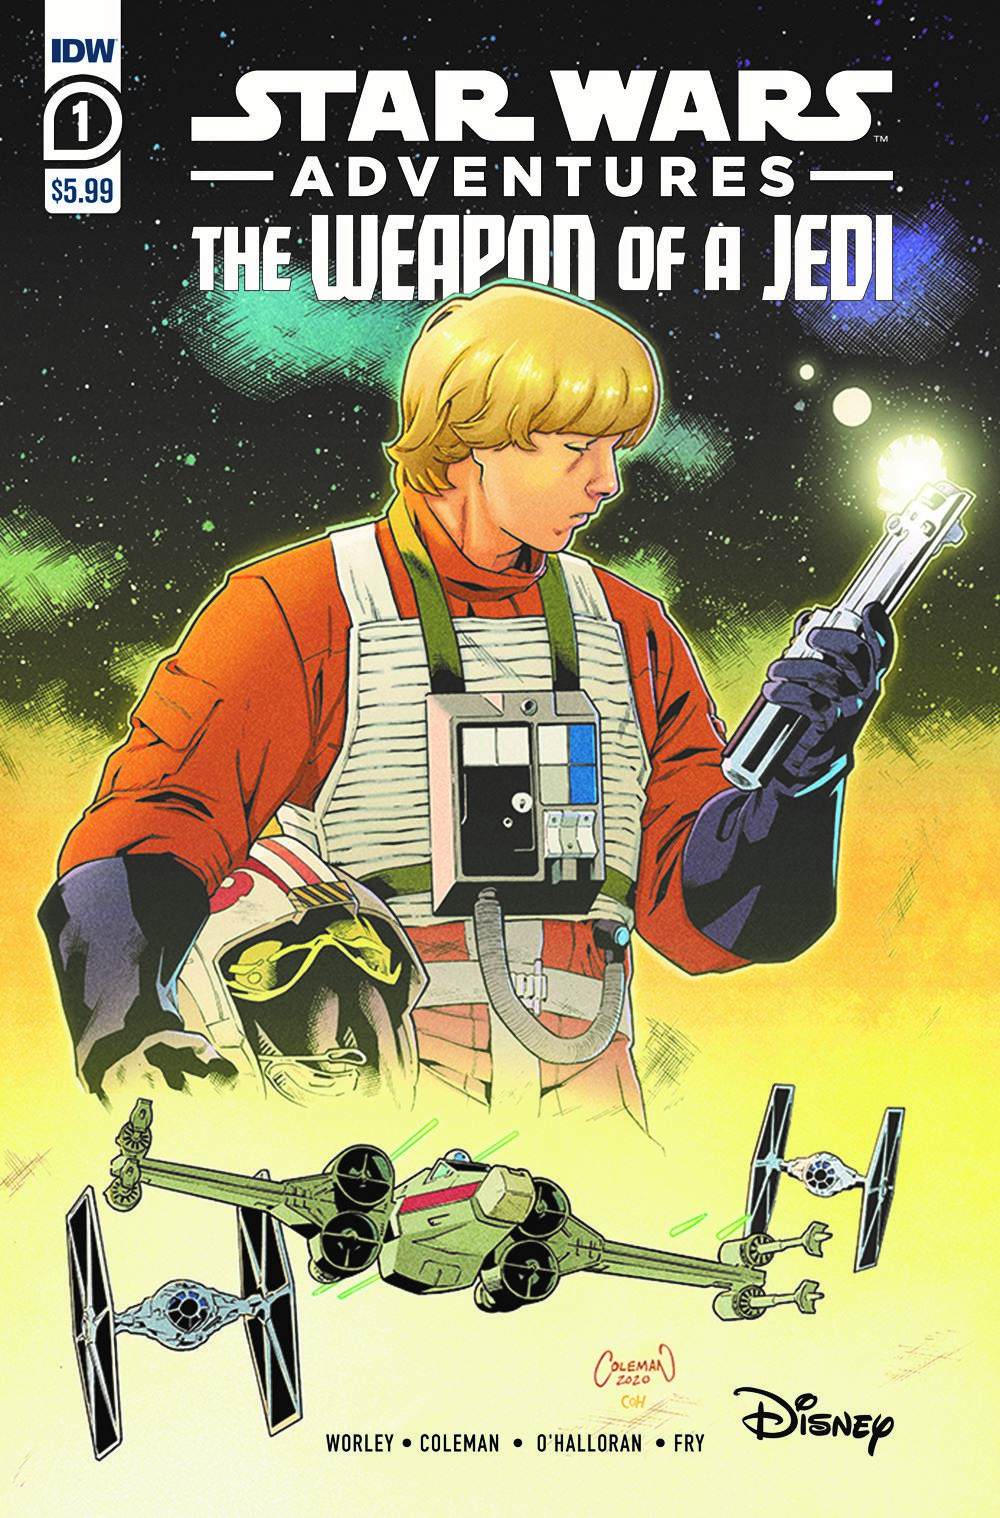 SWAWeaponofaJedi01-A ComicList: IDW Publishing New Releases for 05/26/2021